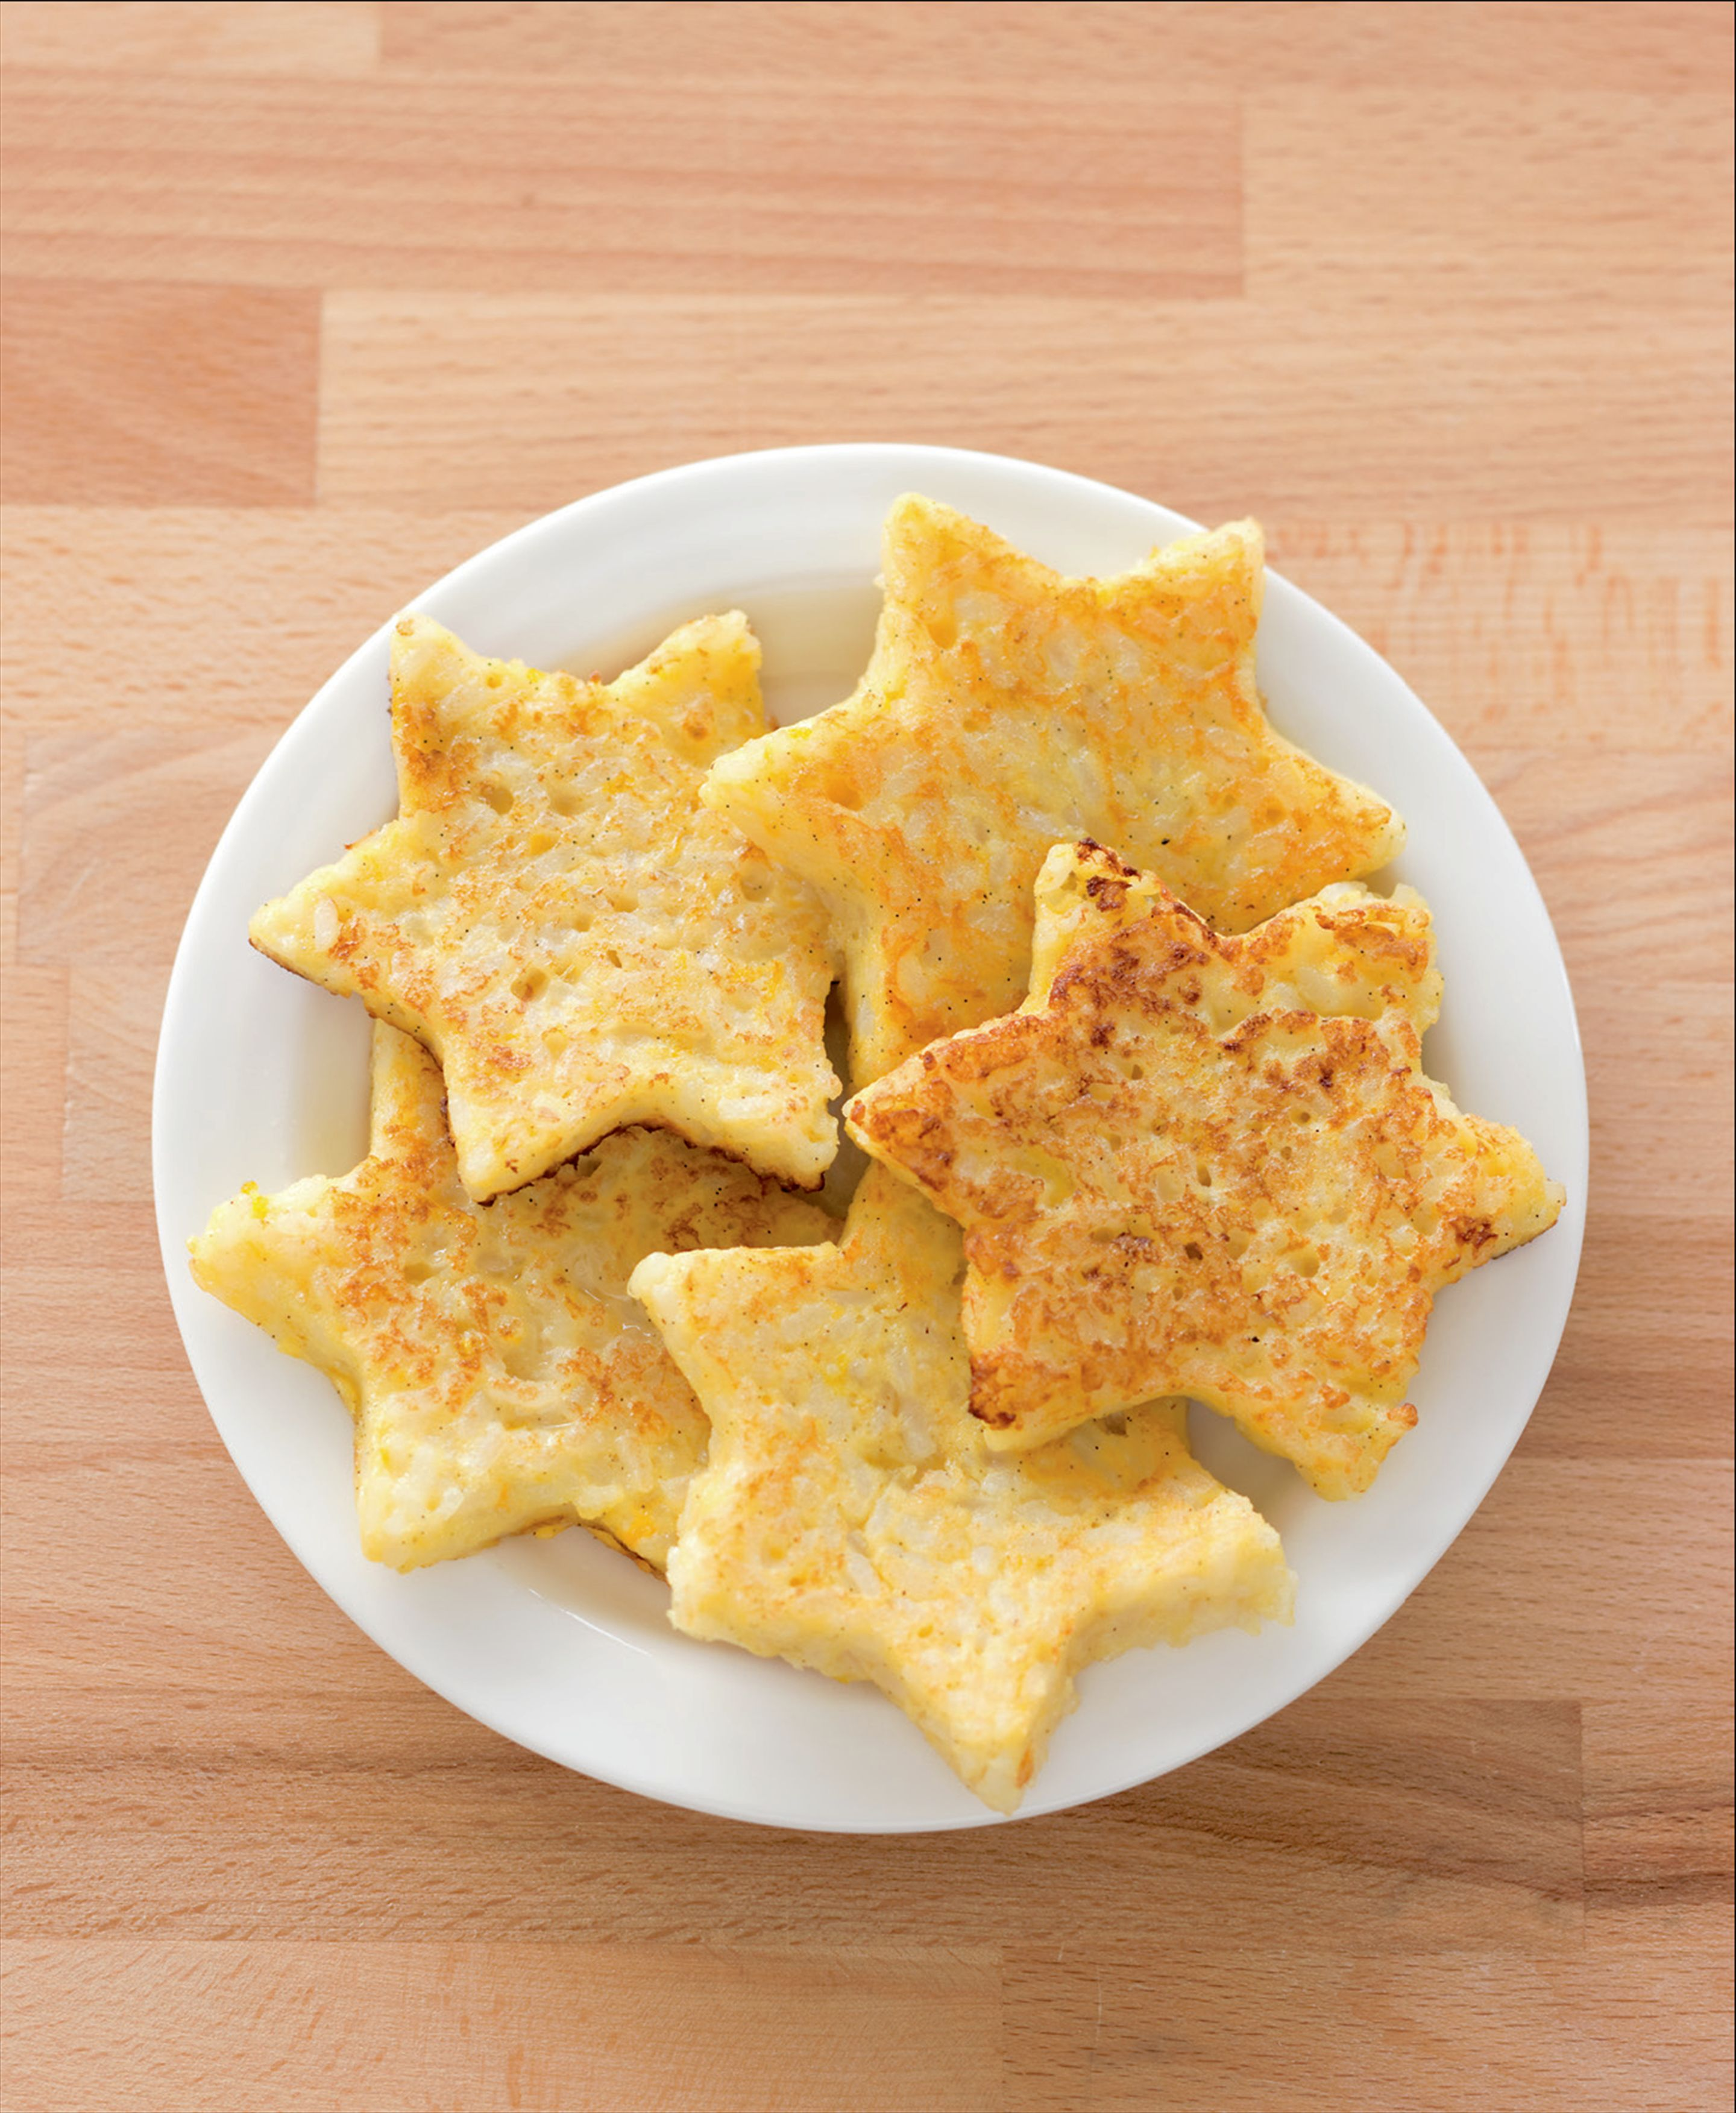 Star-shaped rice fritters